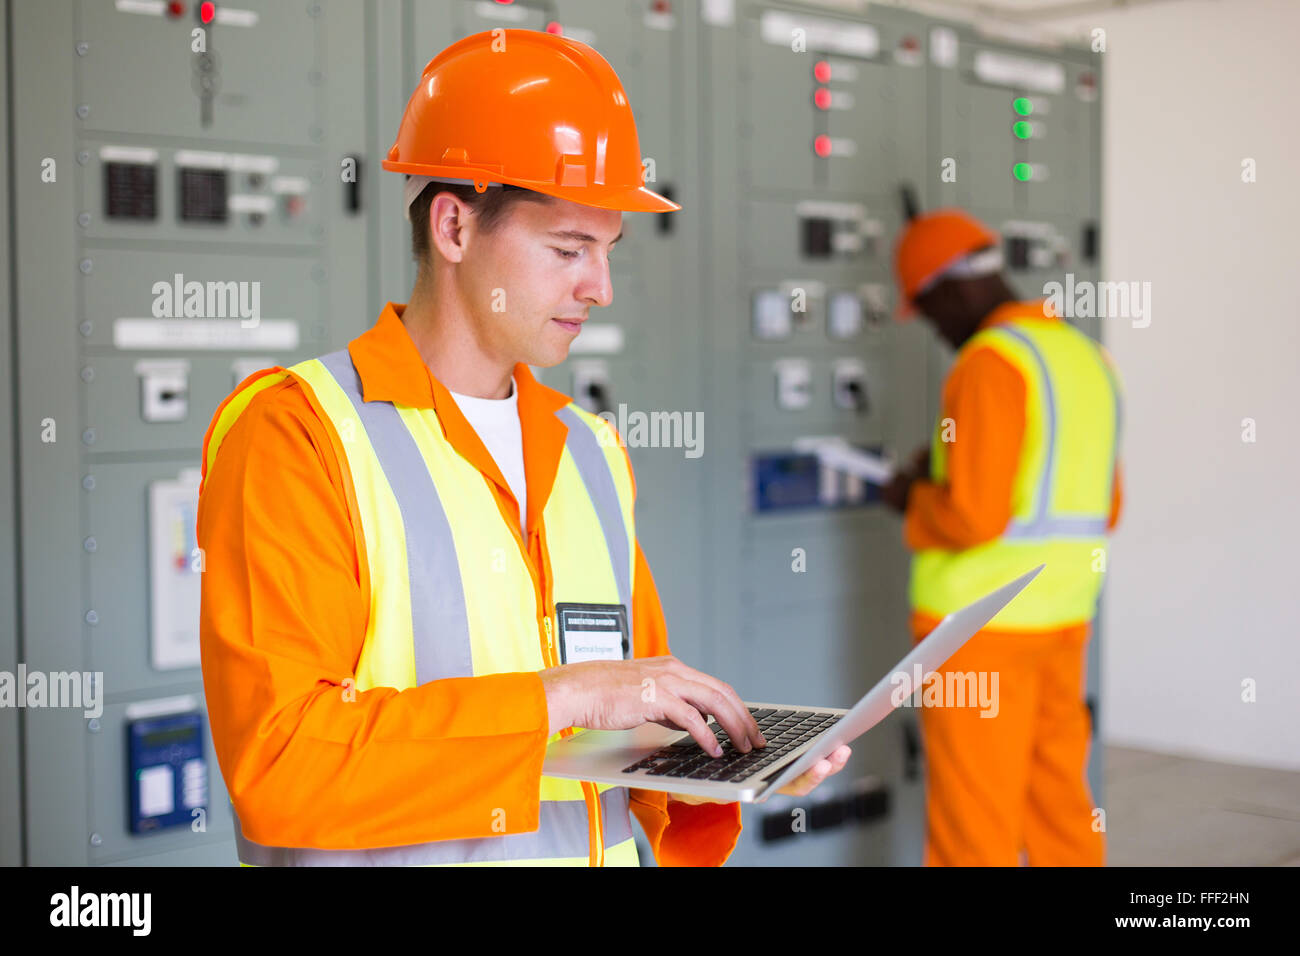 electrical worker working on laptop with colleague on background - Stock Image